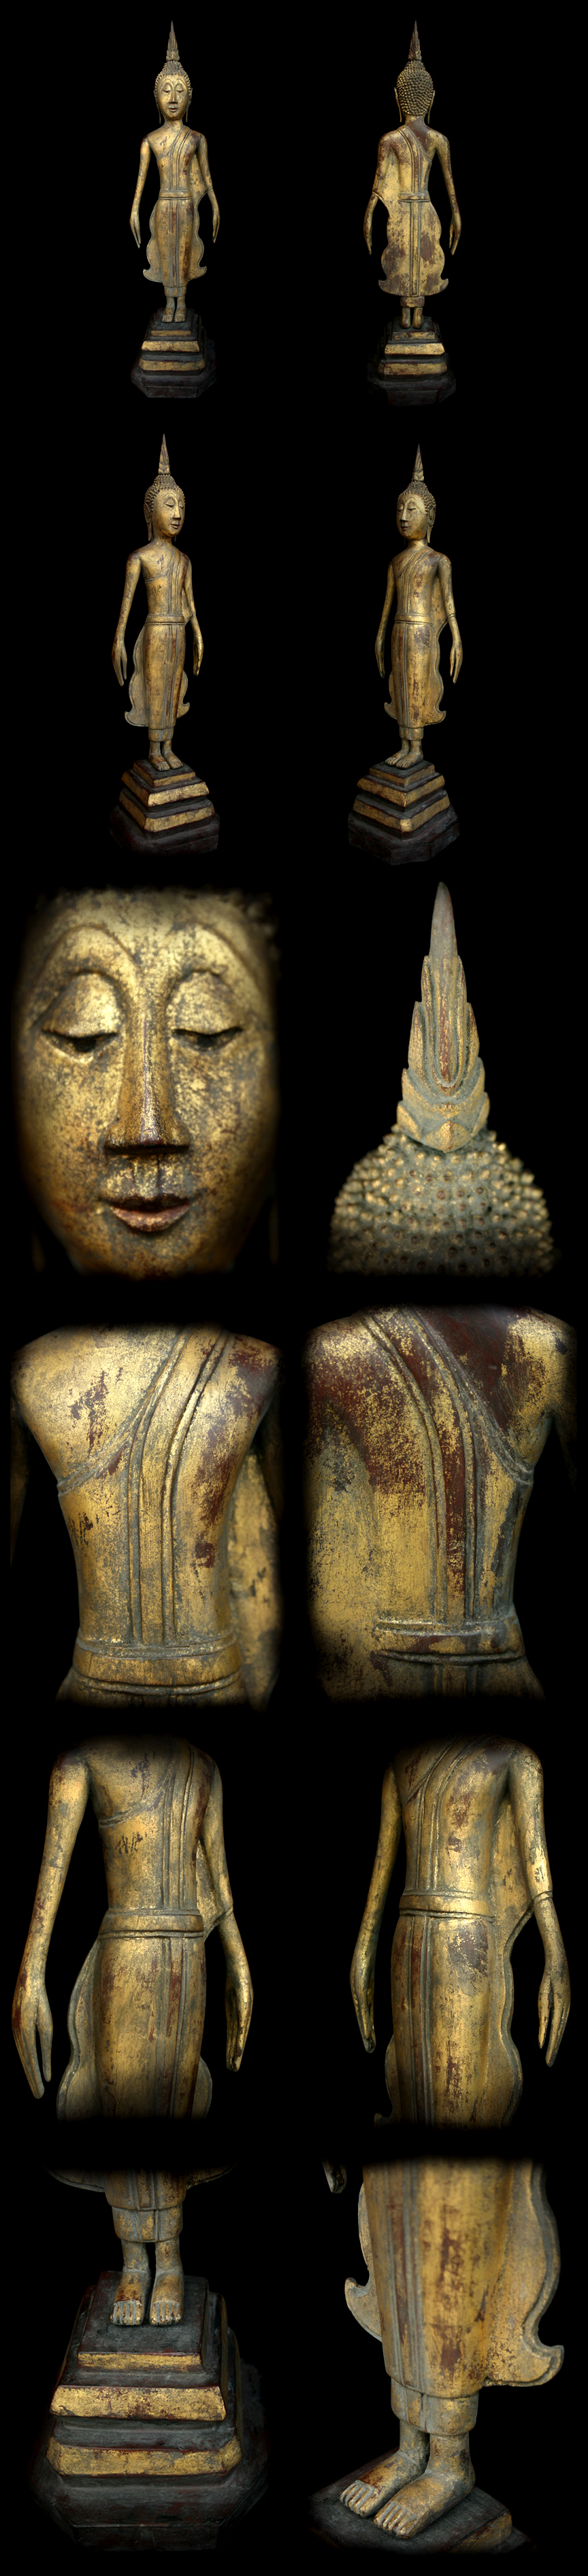 Extremely Rare 18C Wood Thai - Laos Buddha #098-2